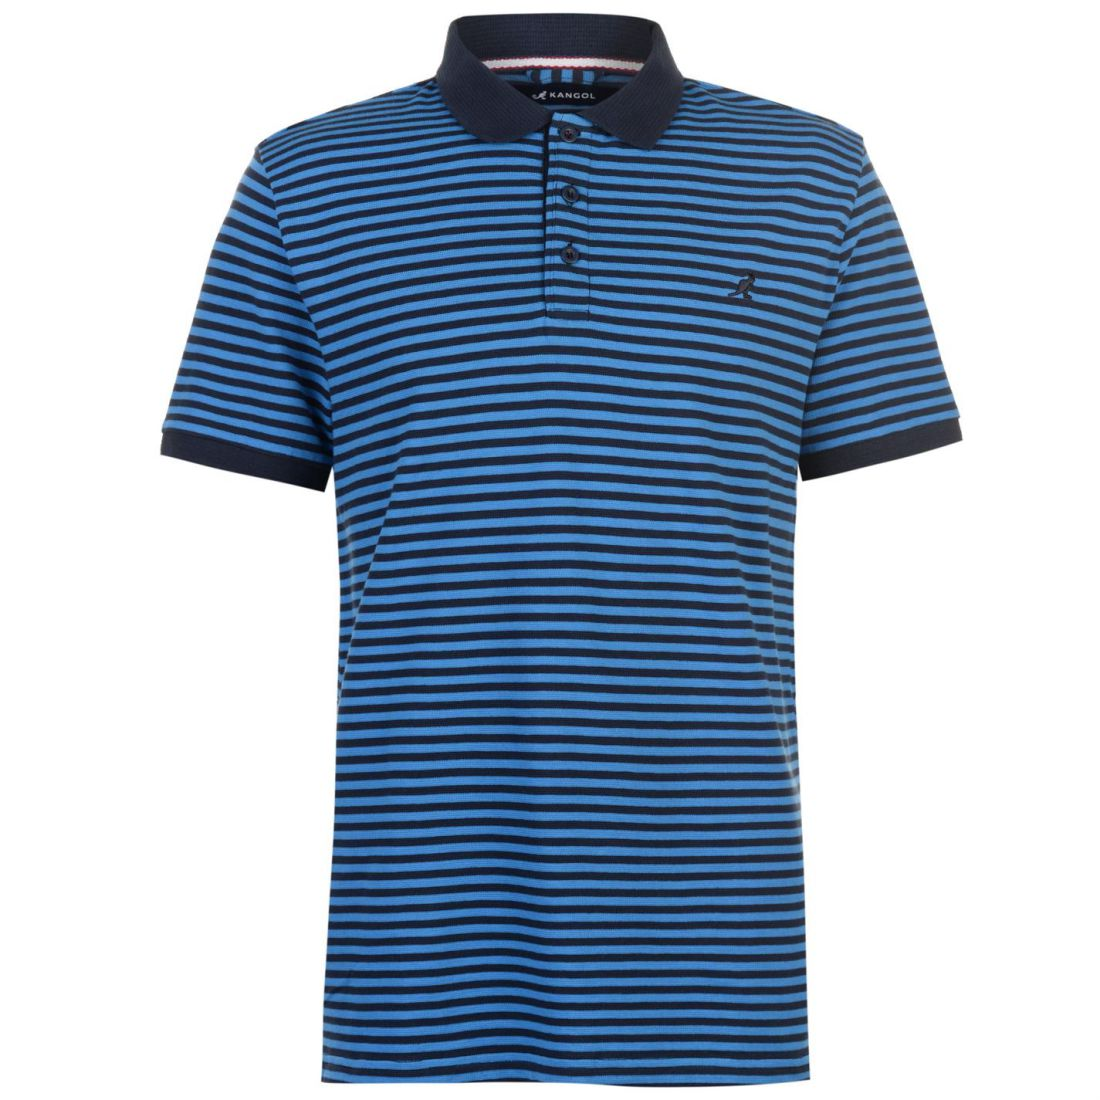 017e4ec2752 Kangol Mens Pin Stripe Polo Shirt Classic Fit Tee Top Short Sleeve ...